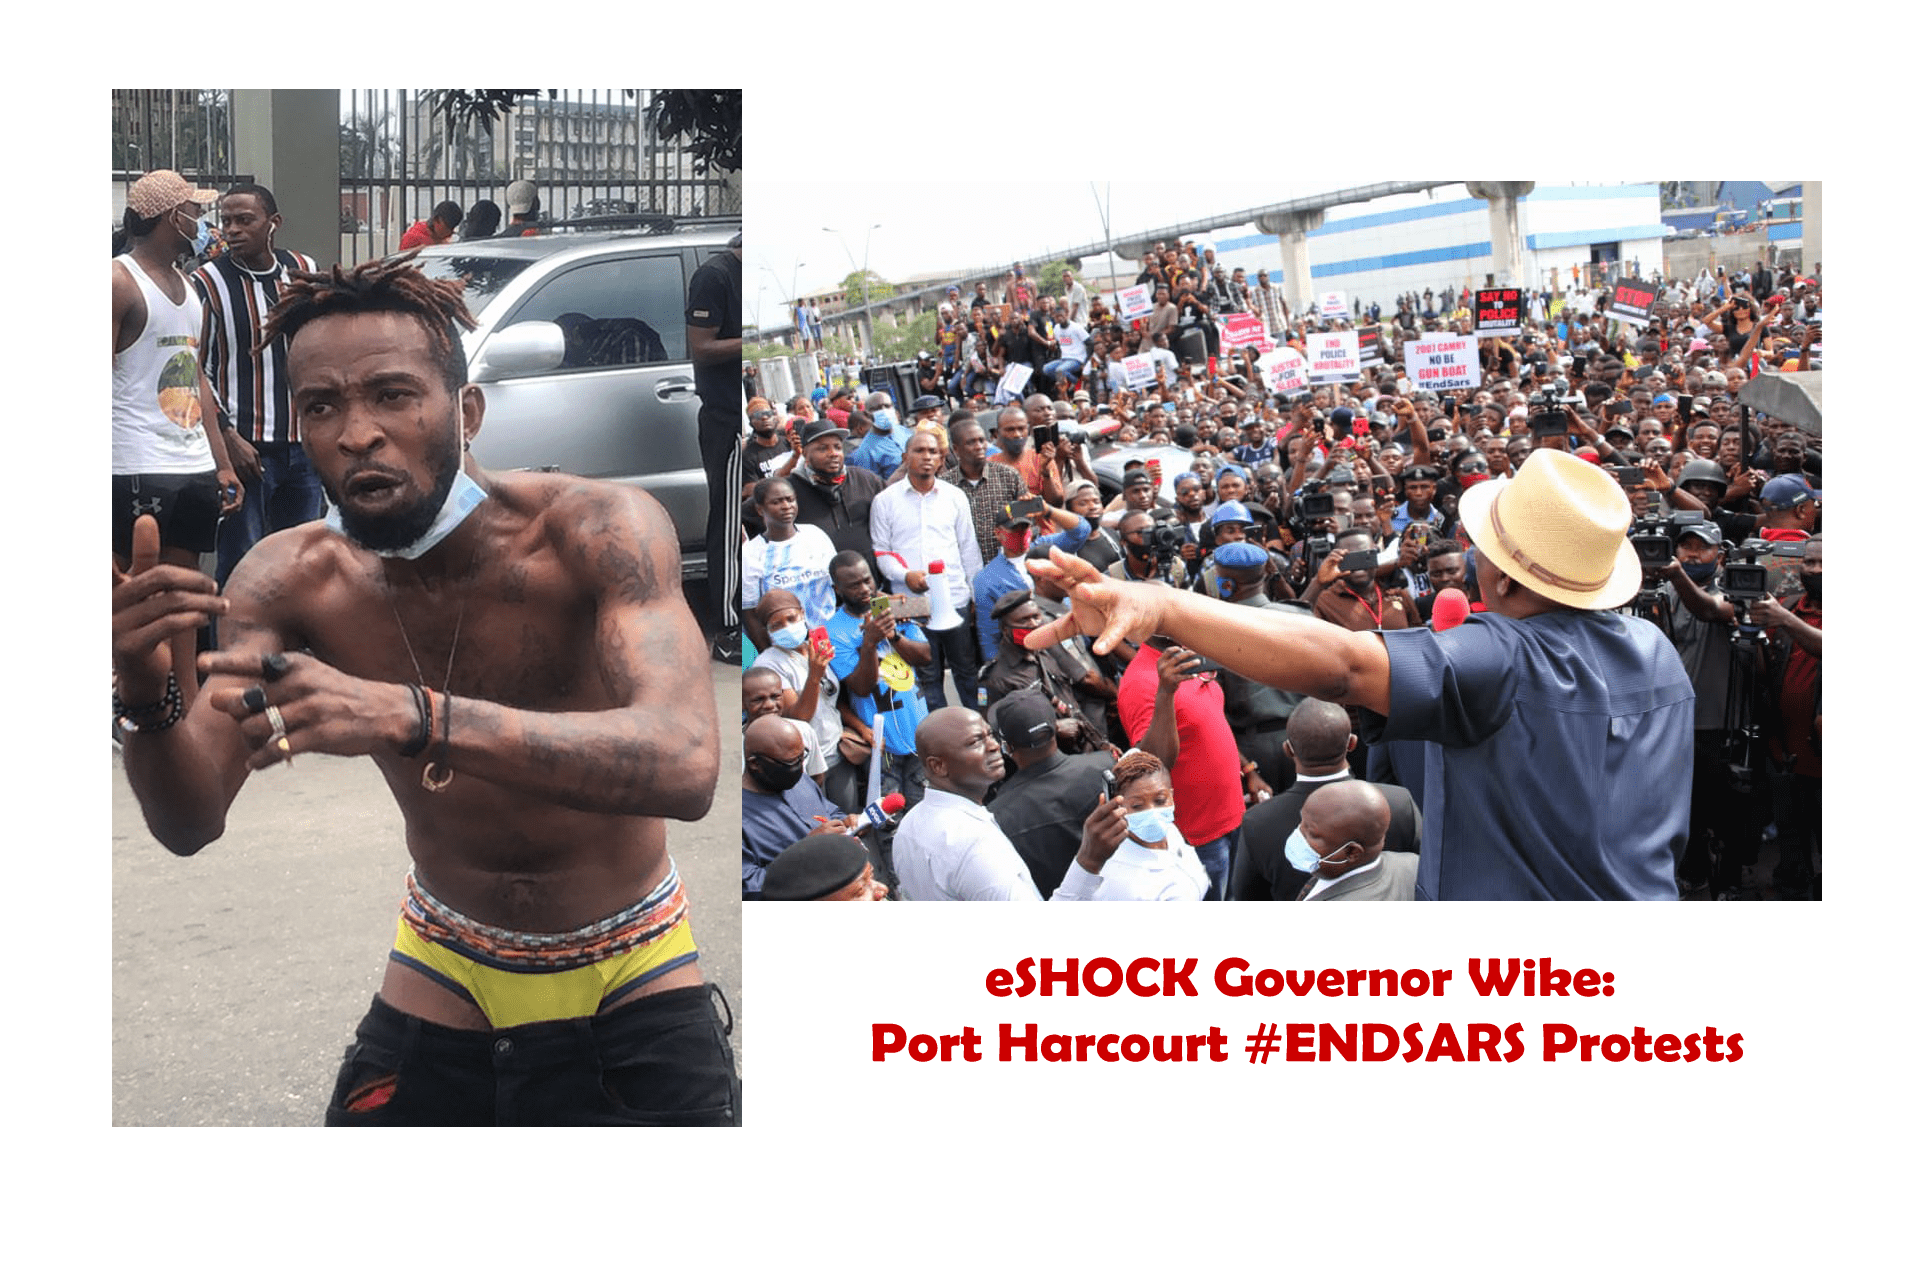 eSHOCK Governor Wike Port Harcourt #ENDSARS Protests